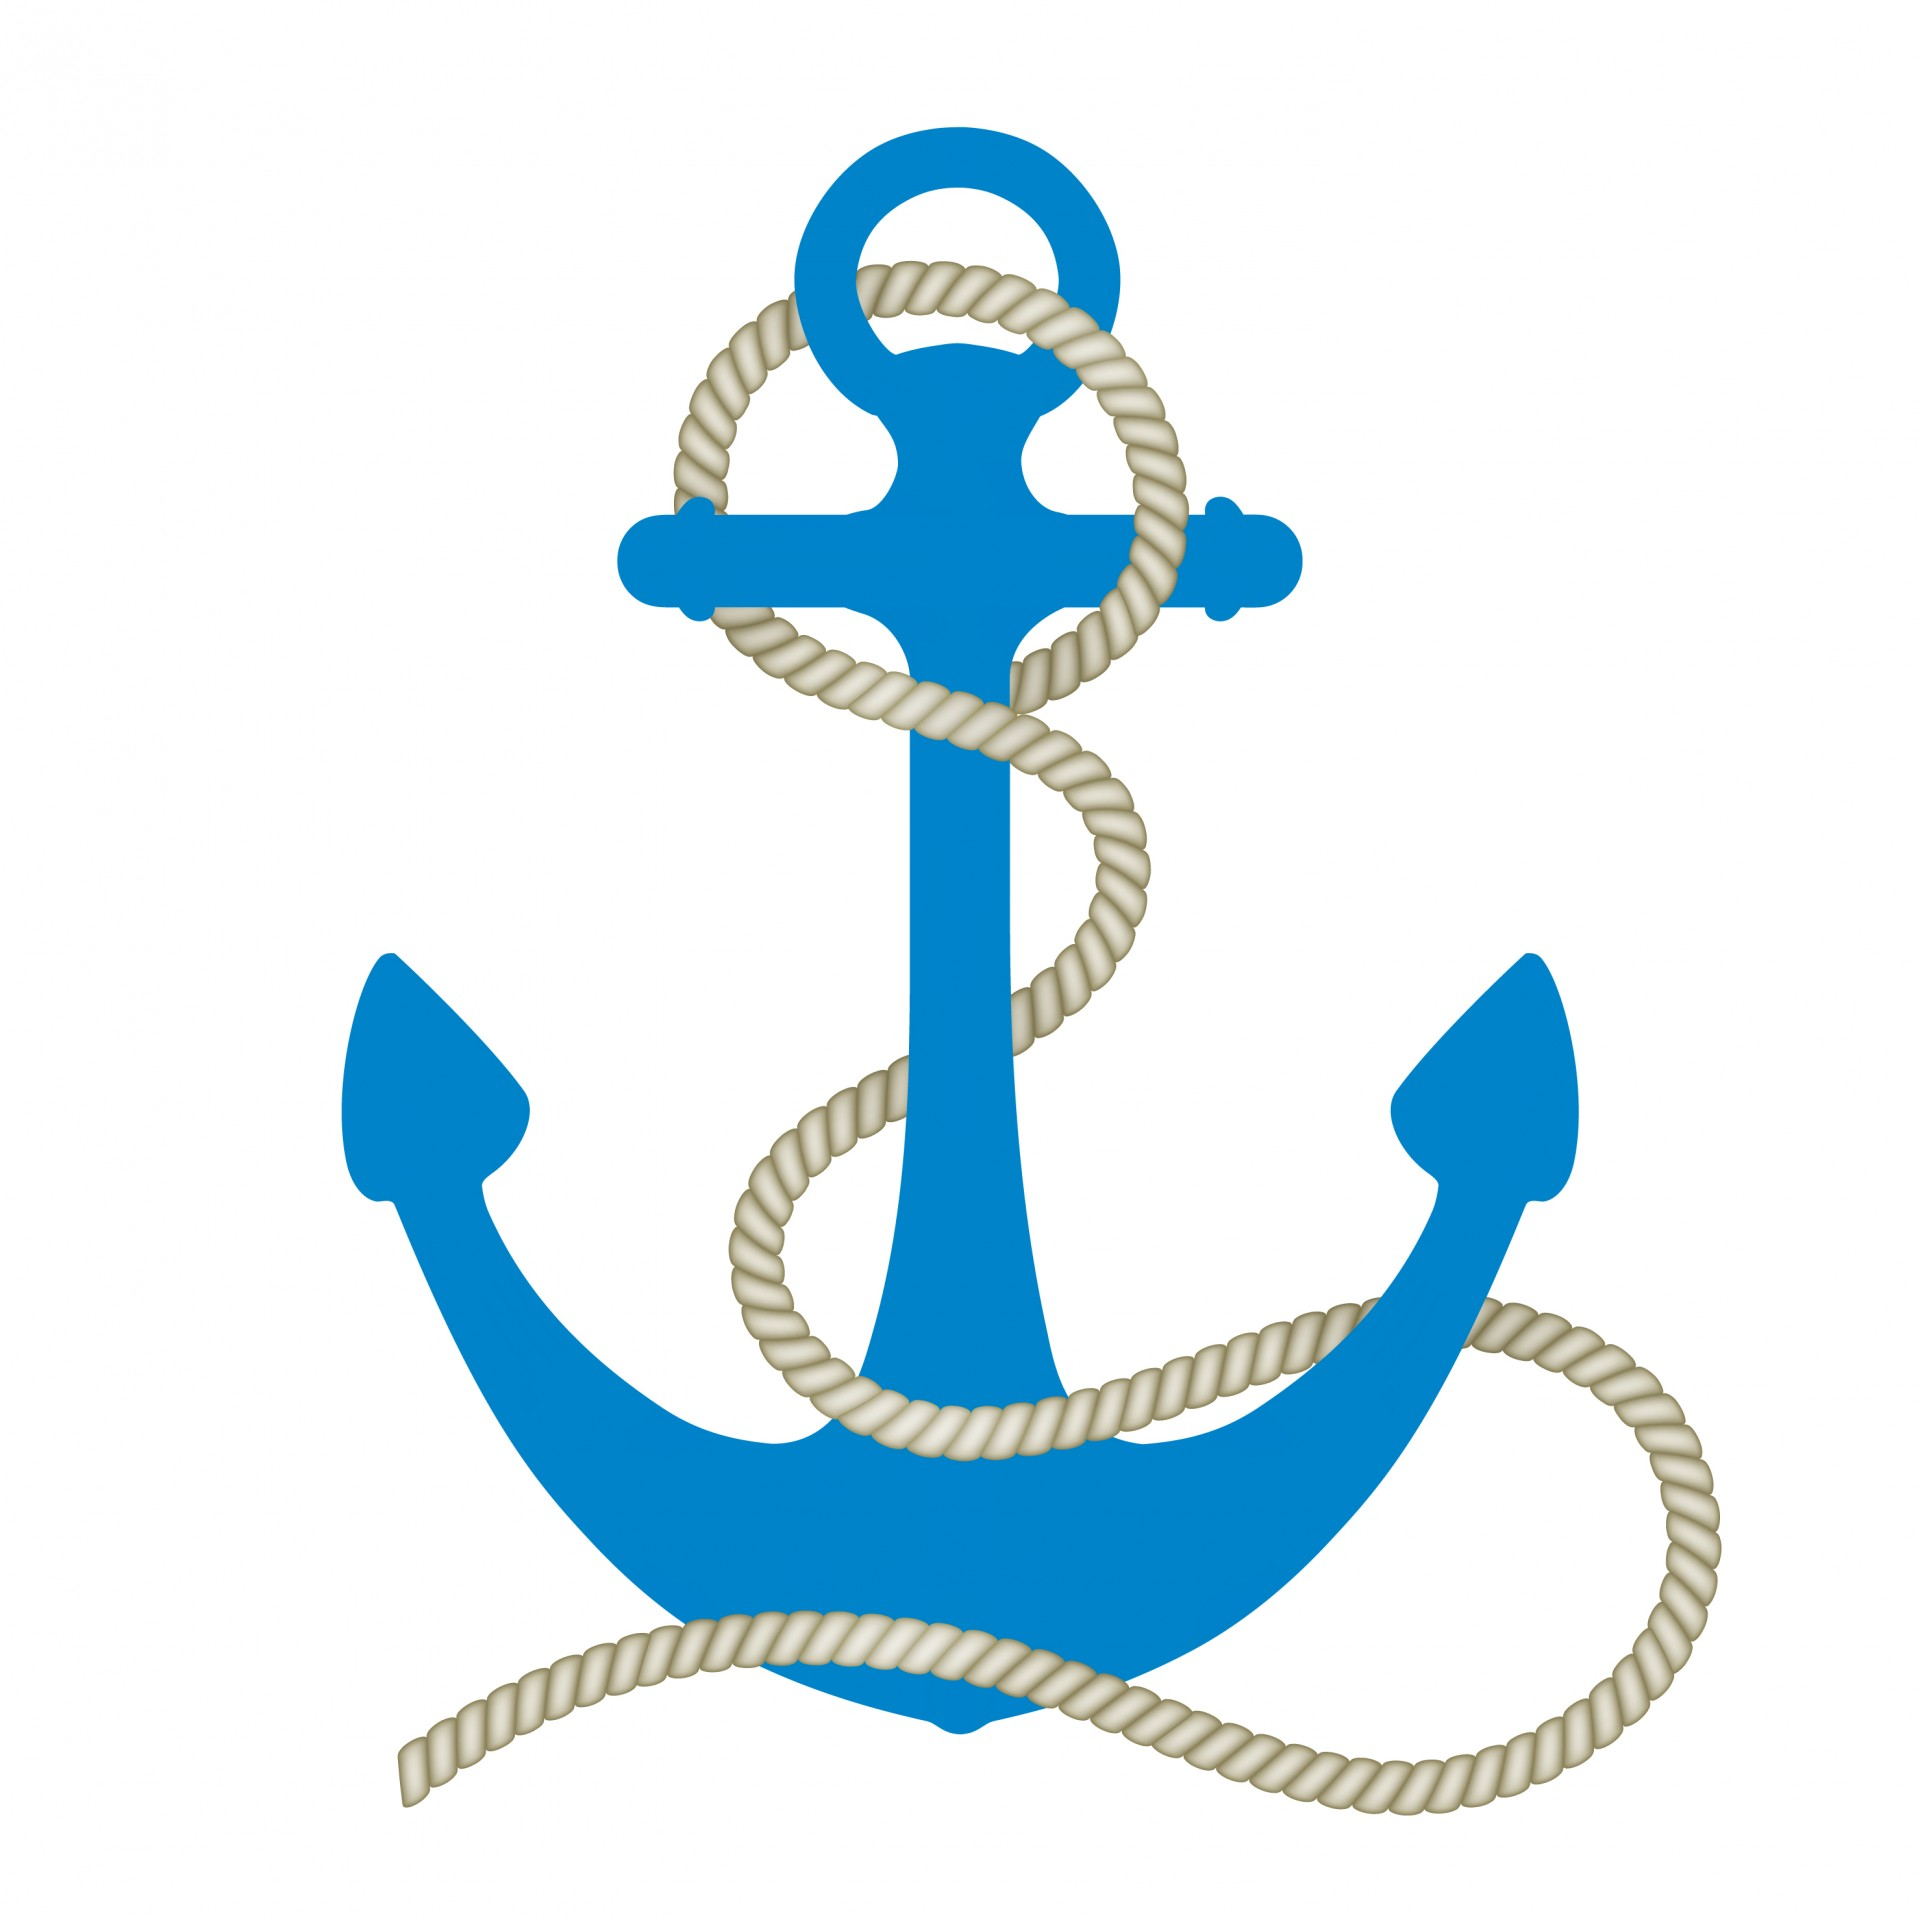 Clipart anchor. Free stock photo public